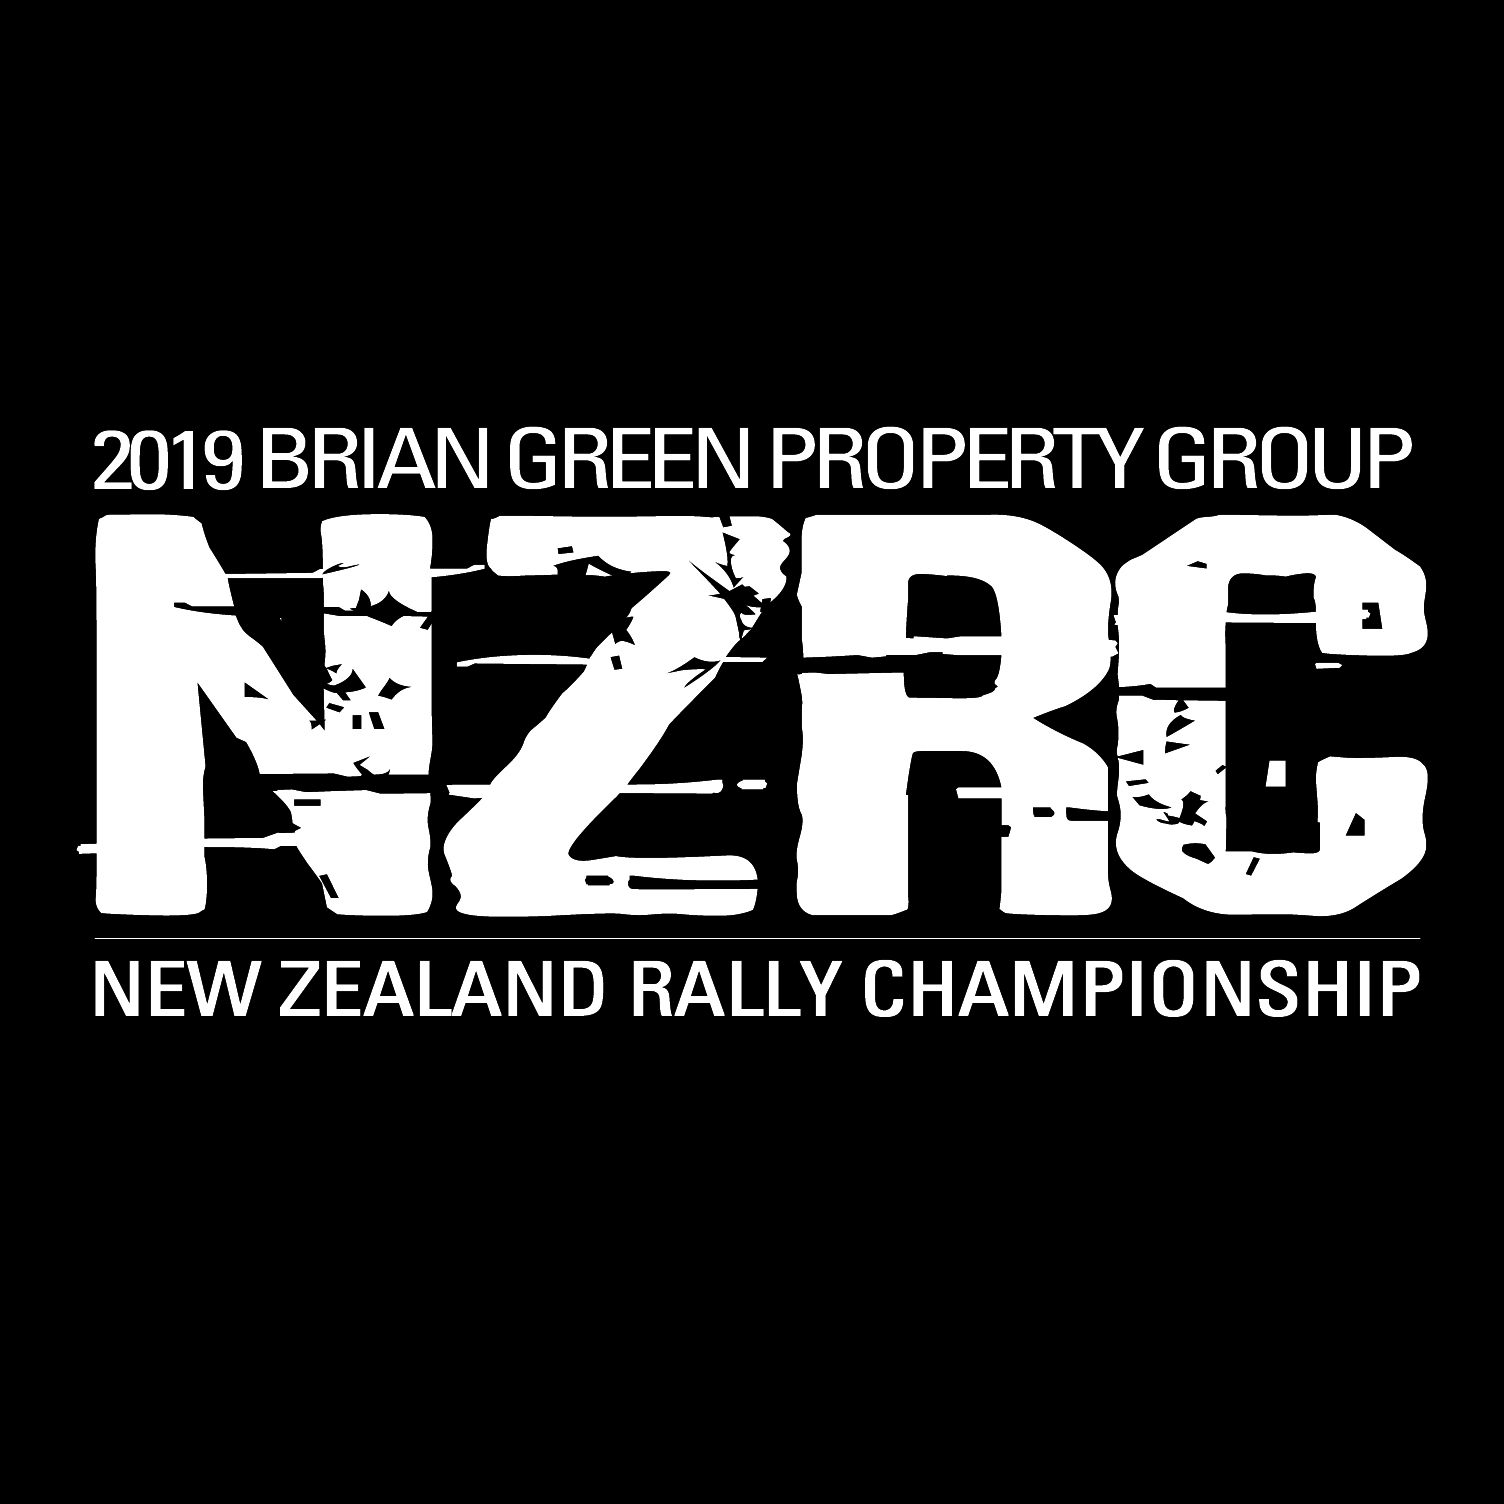 NZRC Events | :: Brian Green Property Group New Zealand Rally Championship ::